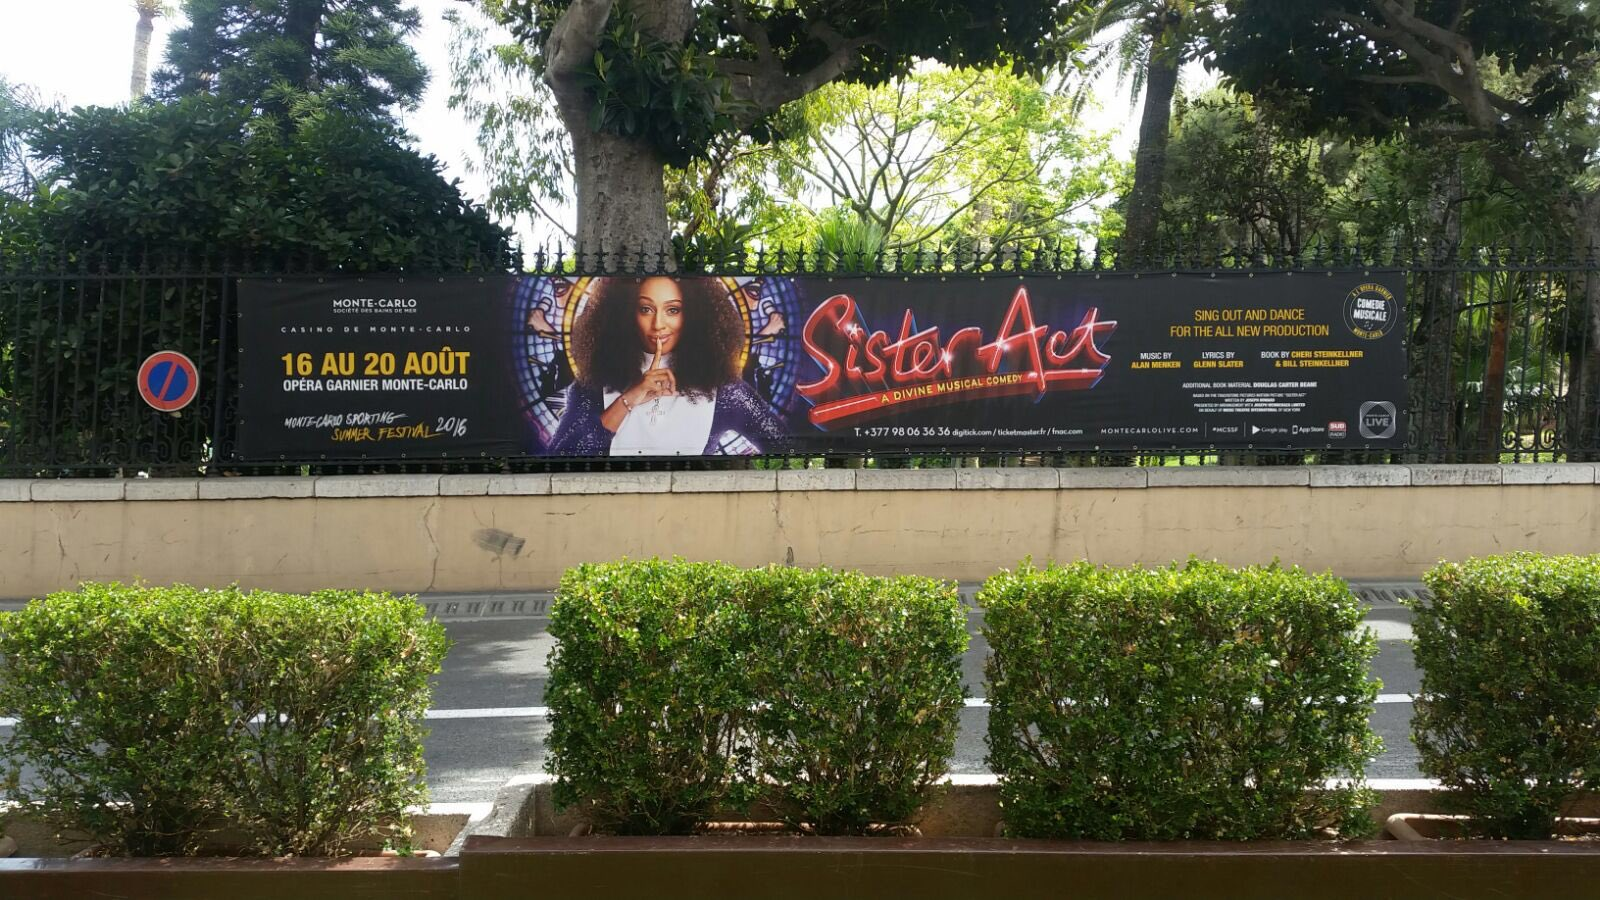 Ready to take on Monaco tonight!! @SisterActUKTour https://t.co/Rcz85i4kpg